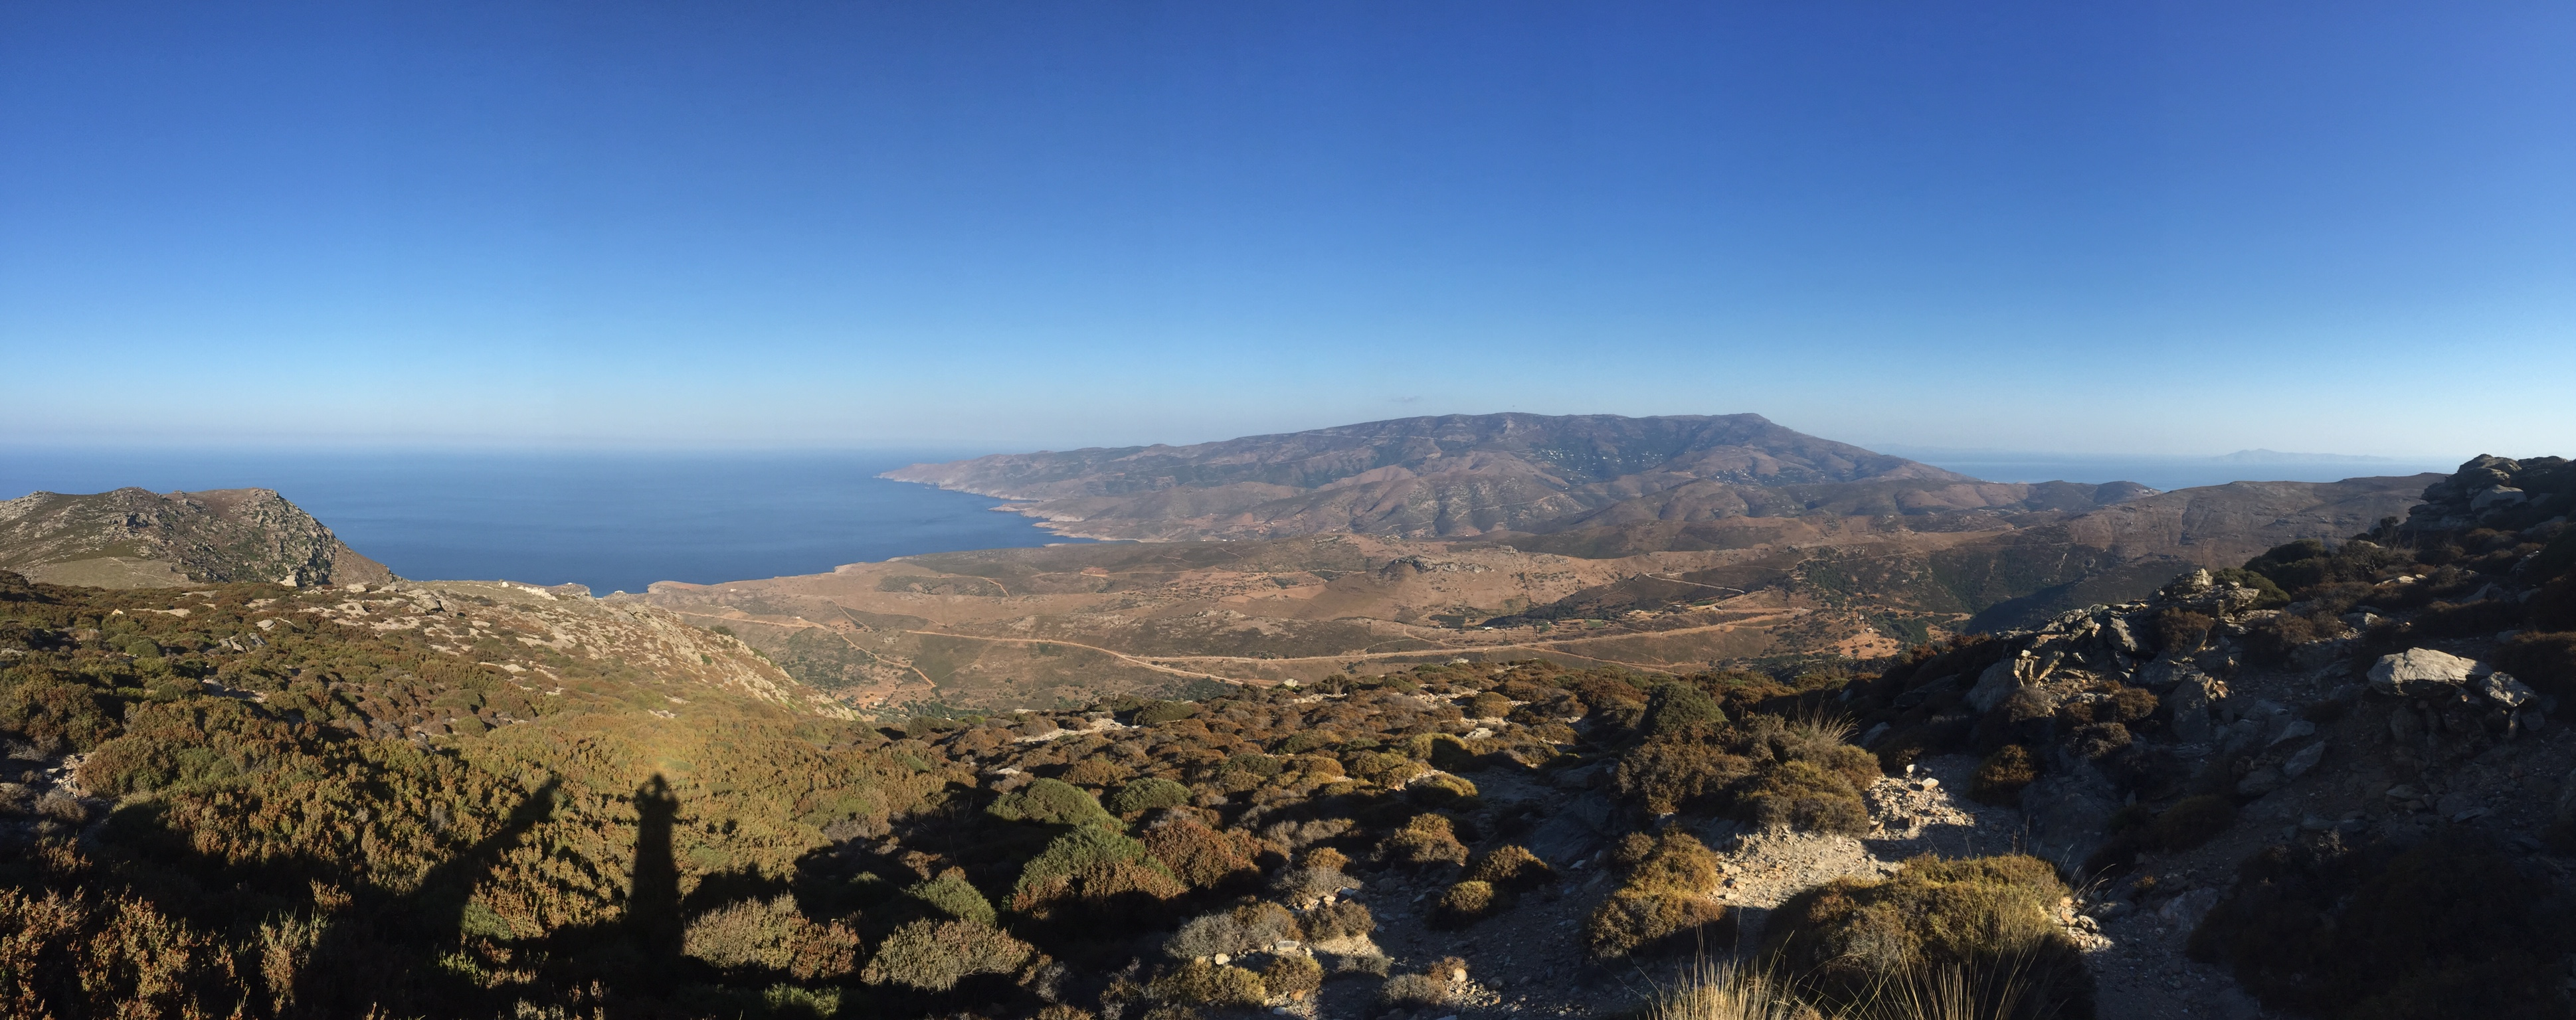 View from the NE part of Andros